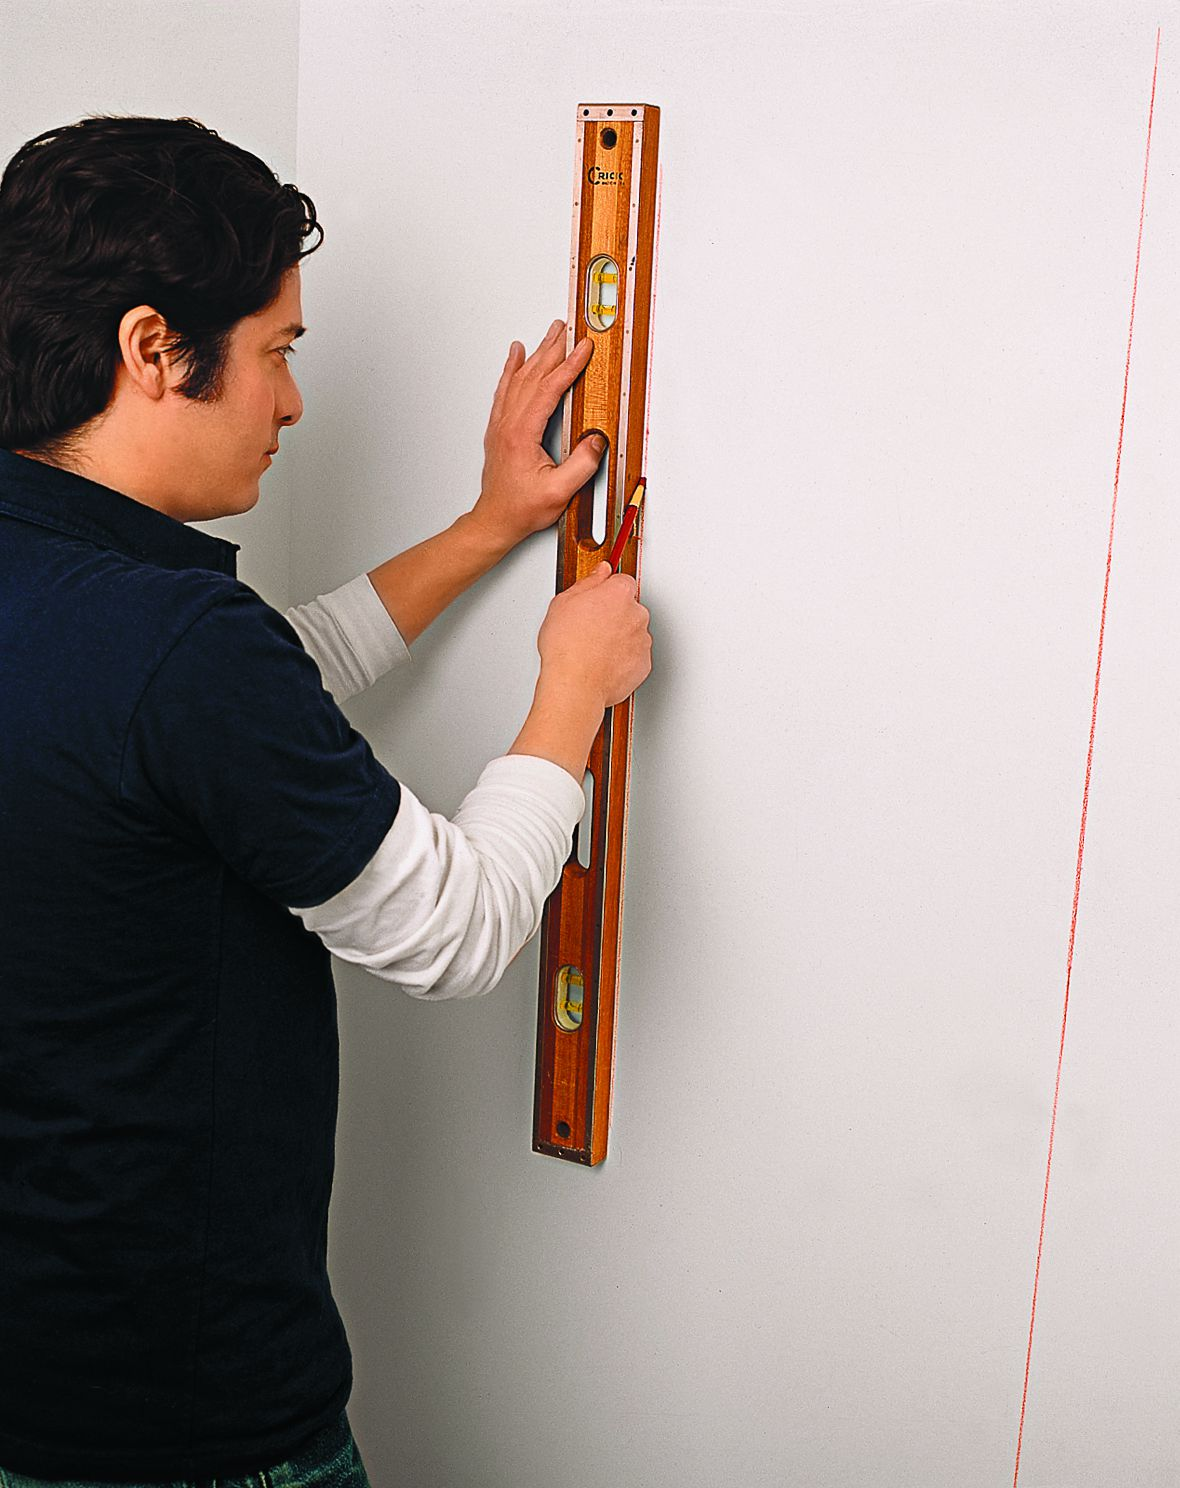 Person measuring wall with a level.